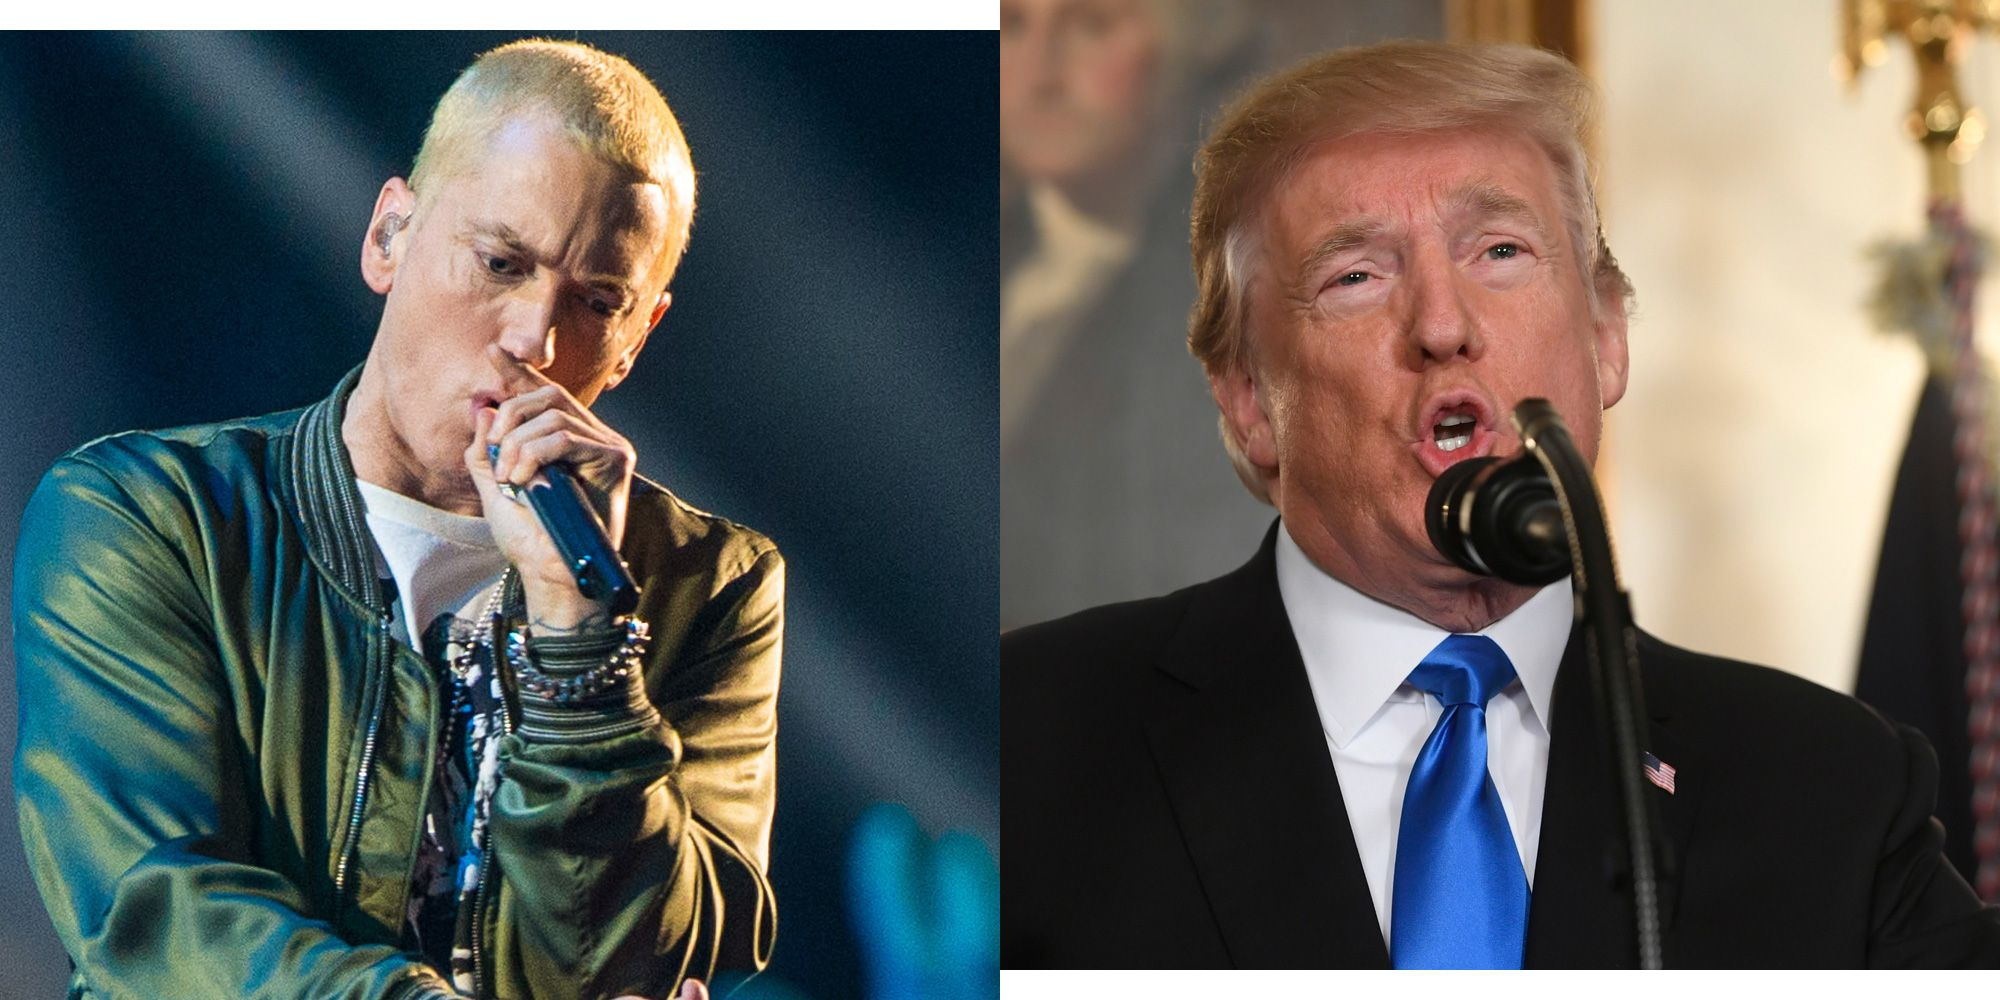 Eminem Says Donald Trump Sent Secret Service to His House on Surprise New Album